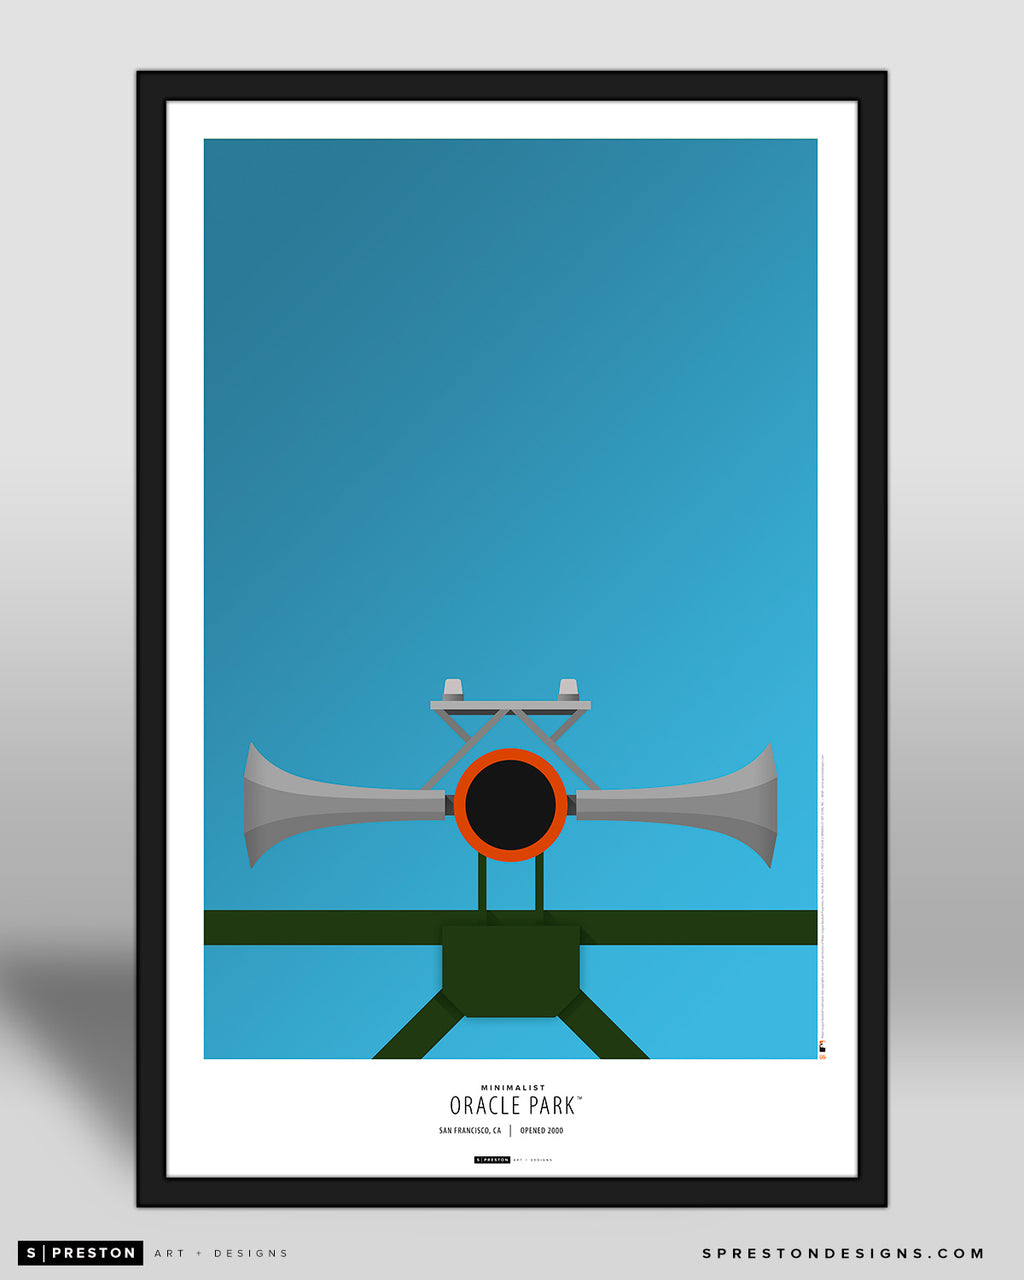 Minimalist Oracle Park Art Poster